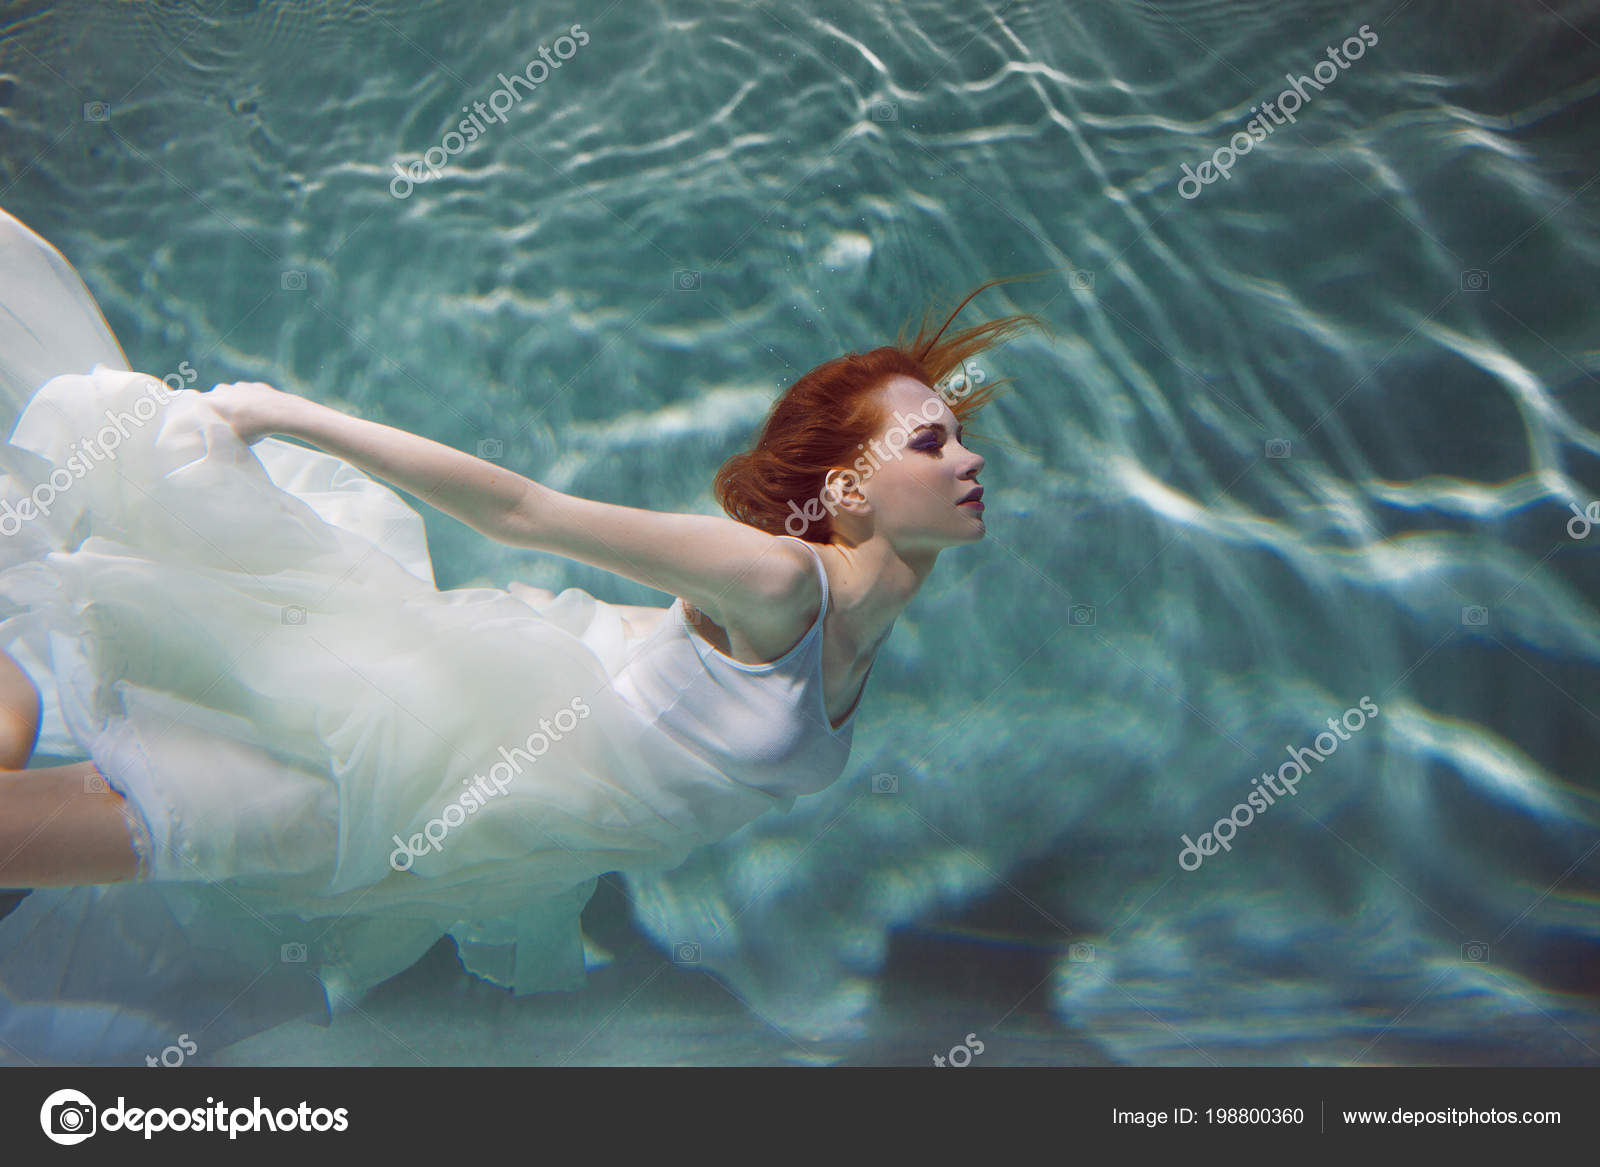 Underwater girl. Beautiful red-haired woman in a white dress, swimming  under water